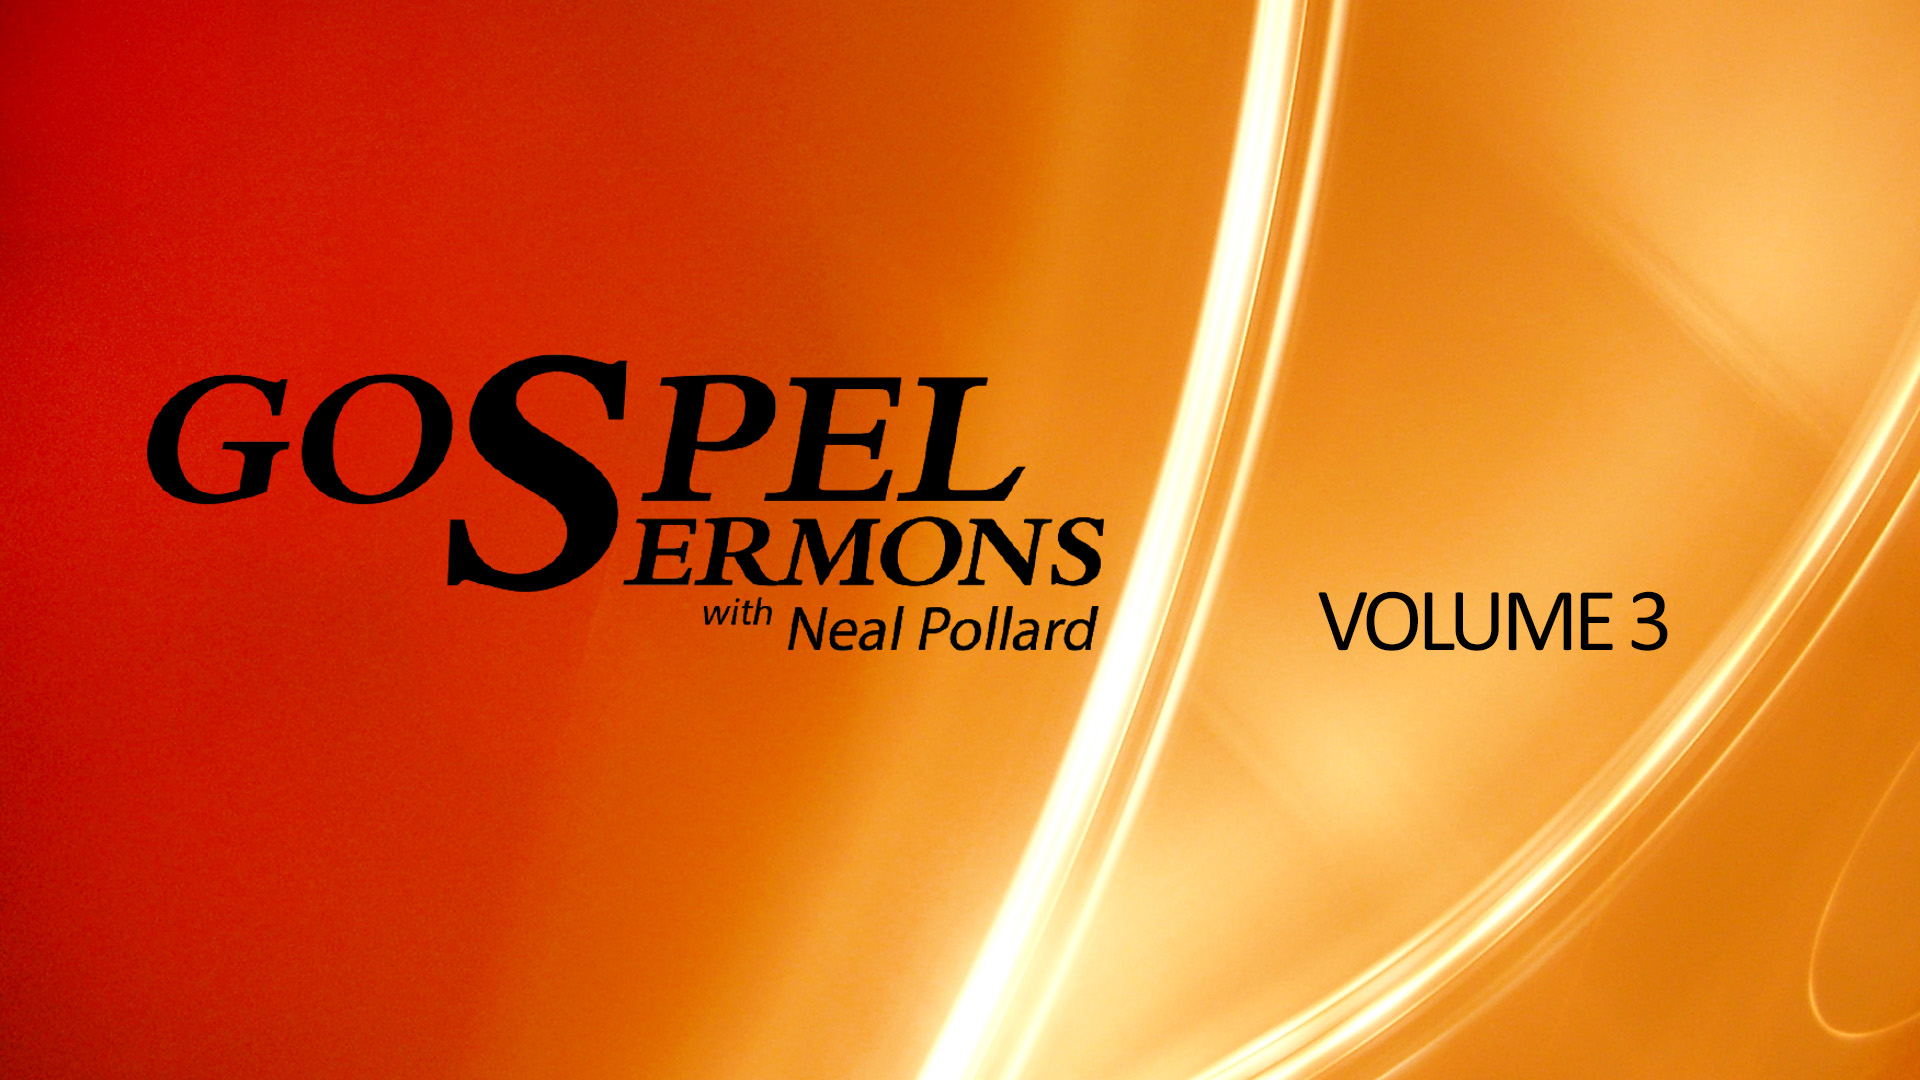 Gospel Sermons with Neal Pollard Volume 3